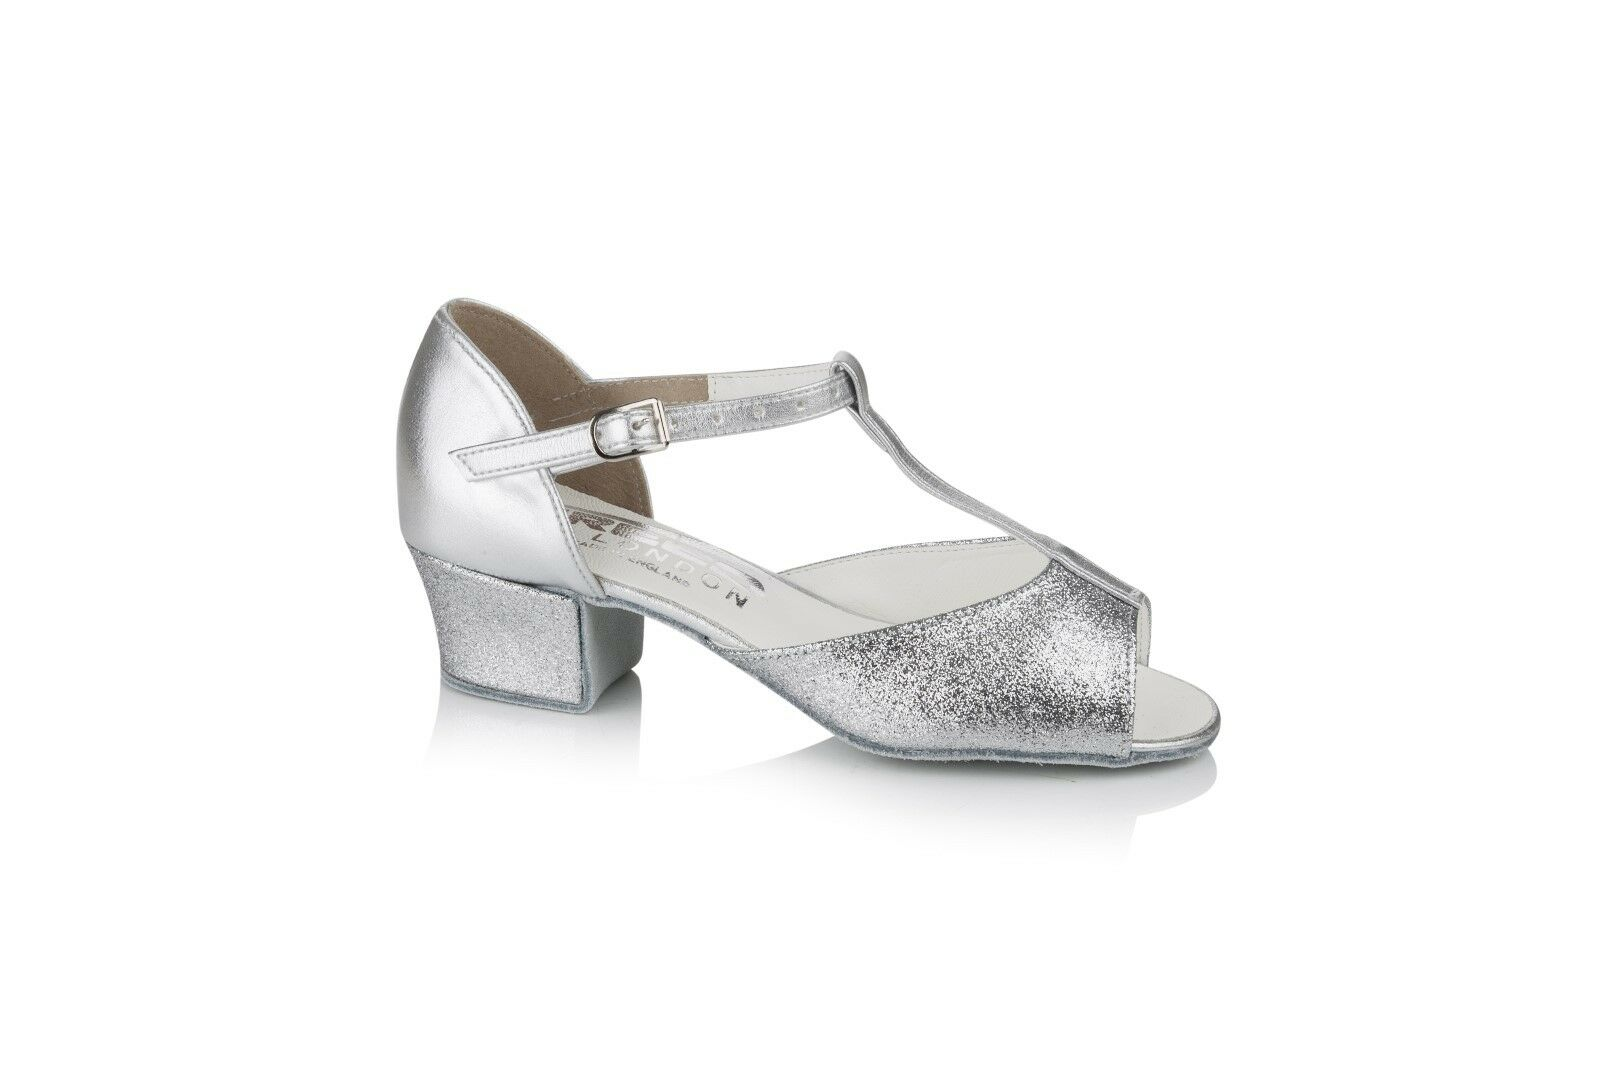 Freed of London Marina Silver ballroom shoe sizes child 7 to adult 6 made in UK